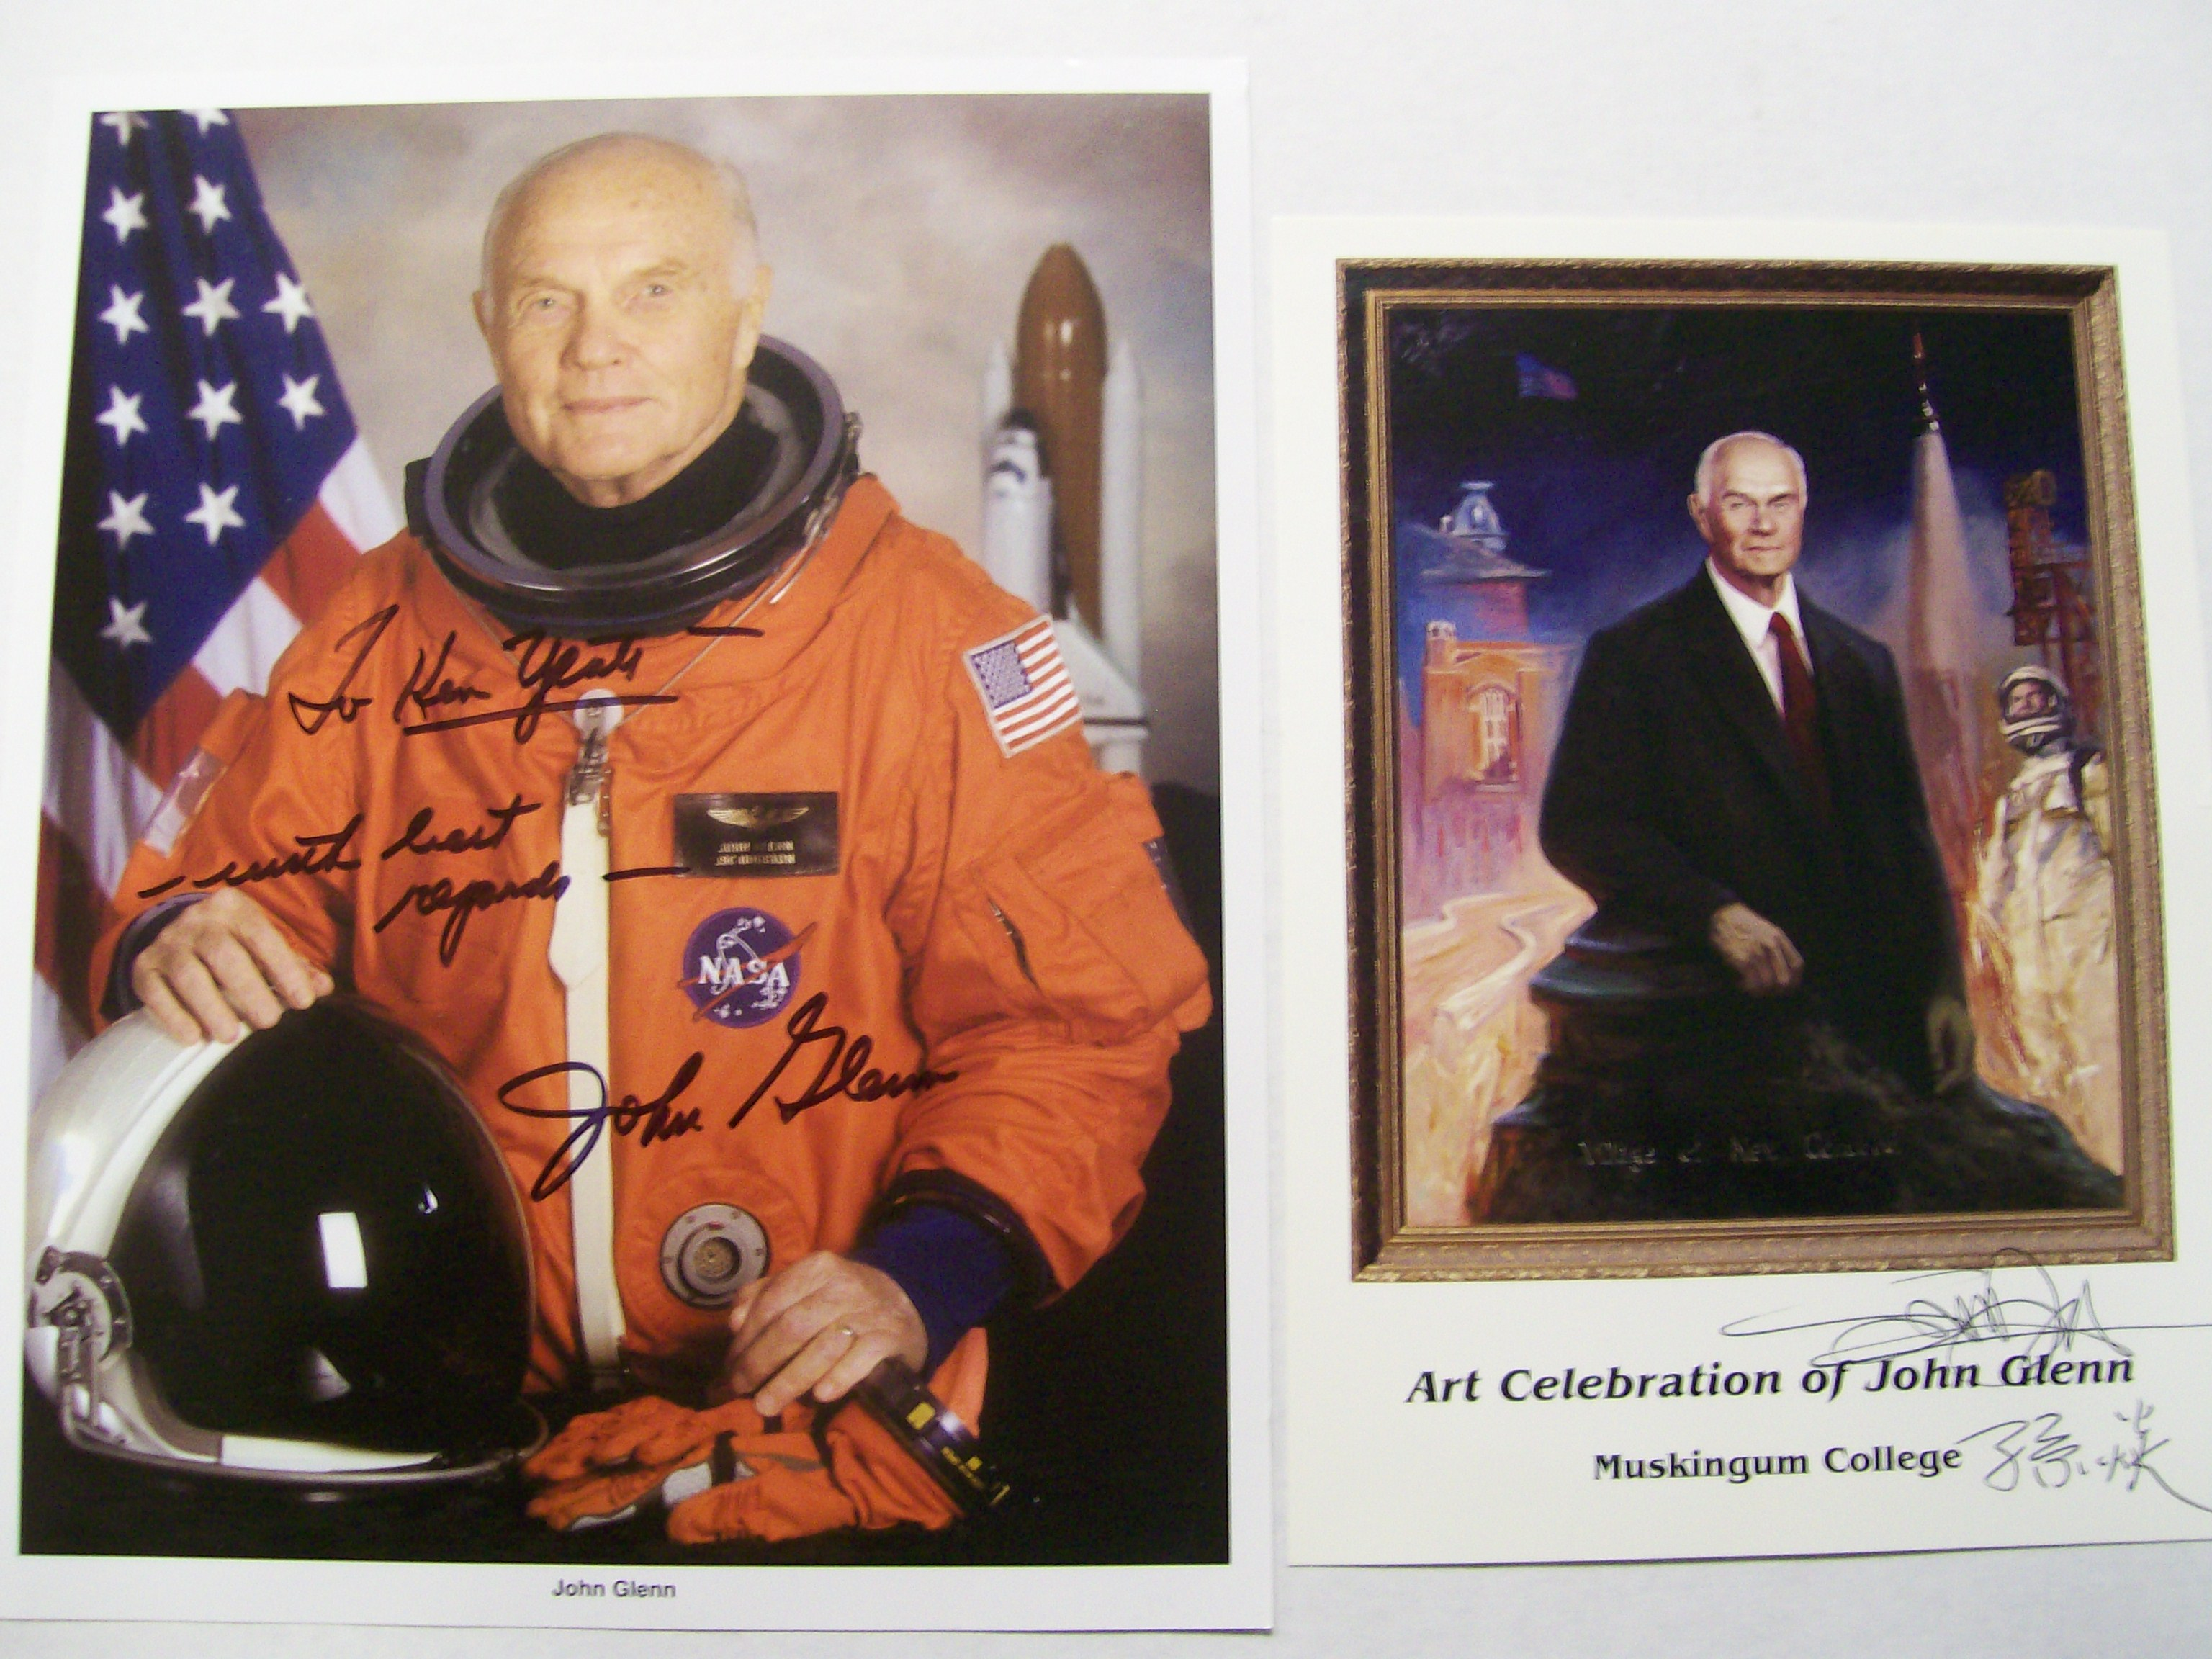 2 Signed Photos of John Glenn NASA & Art Celebration